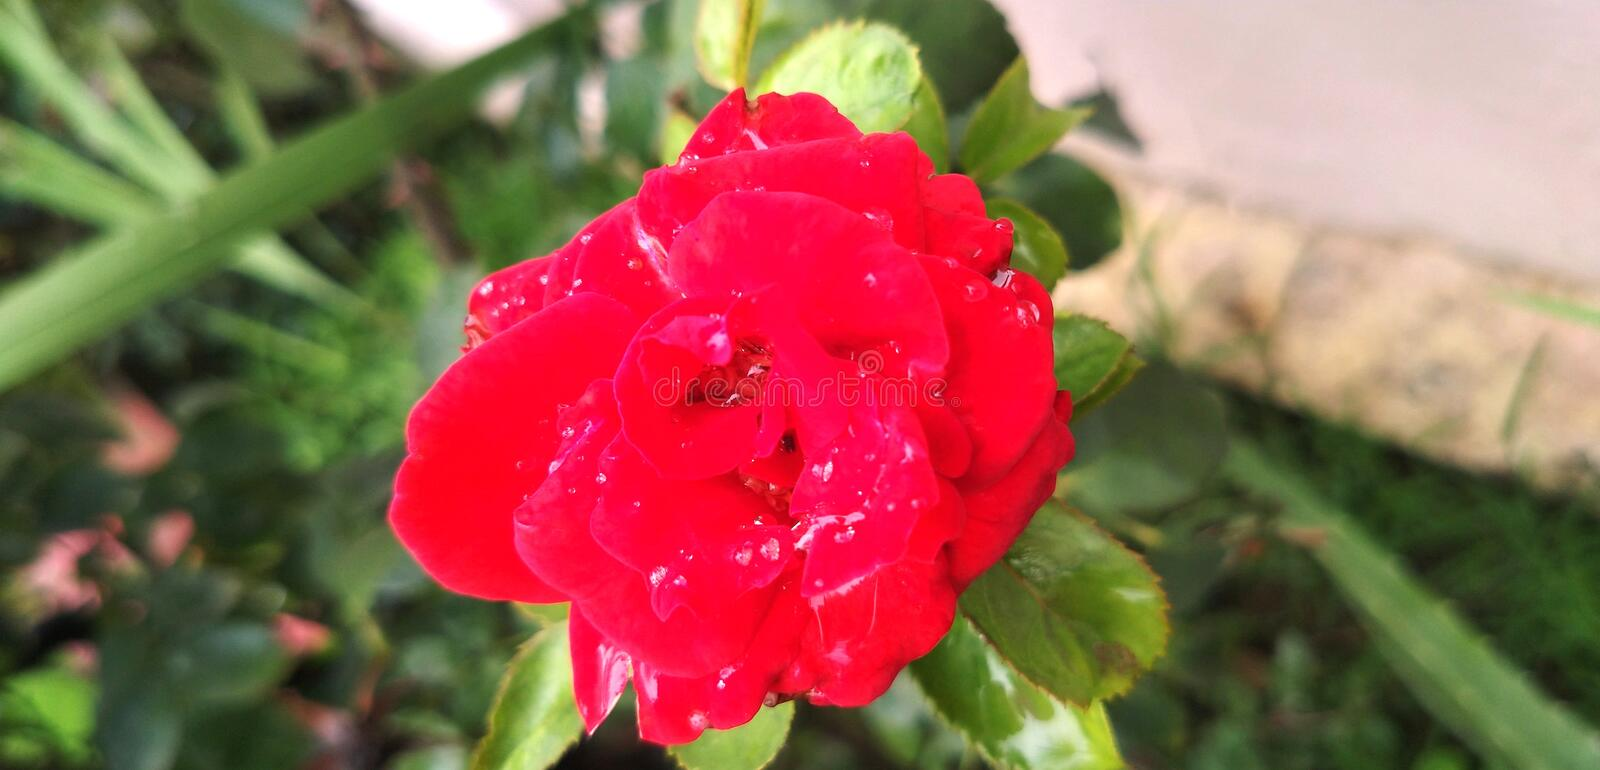 Garden Red Rose Symbol of Love and Passion royalty free stock photos